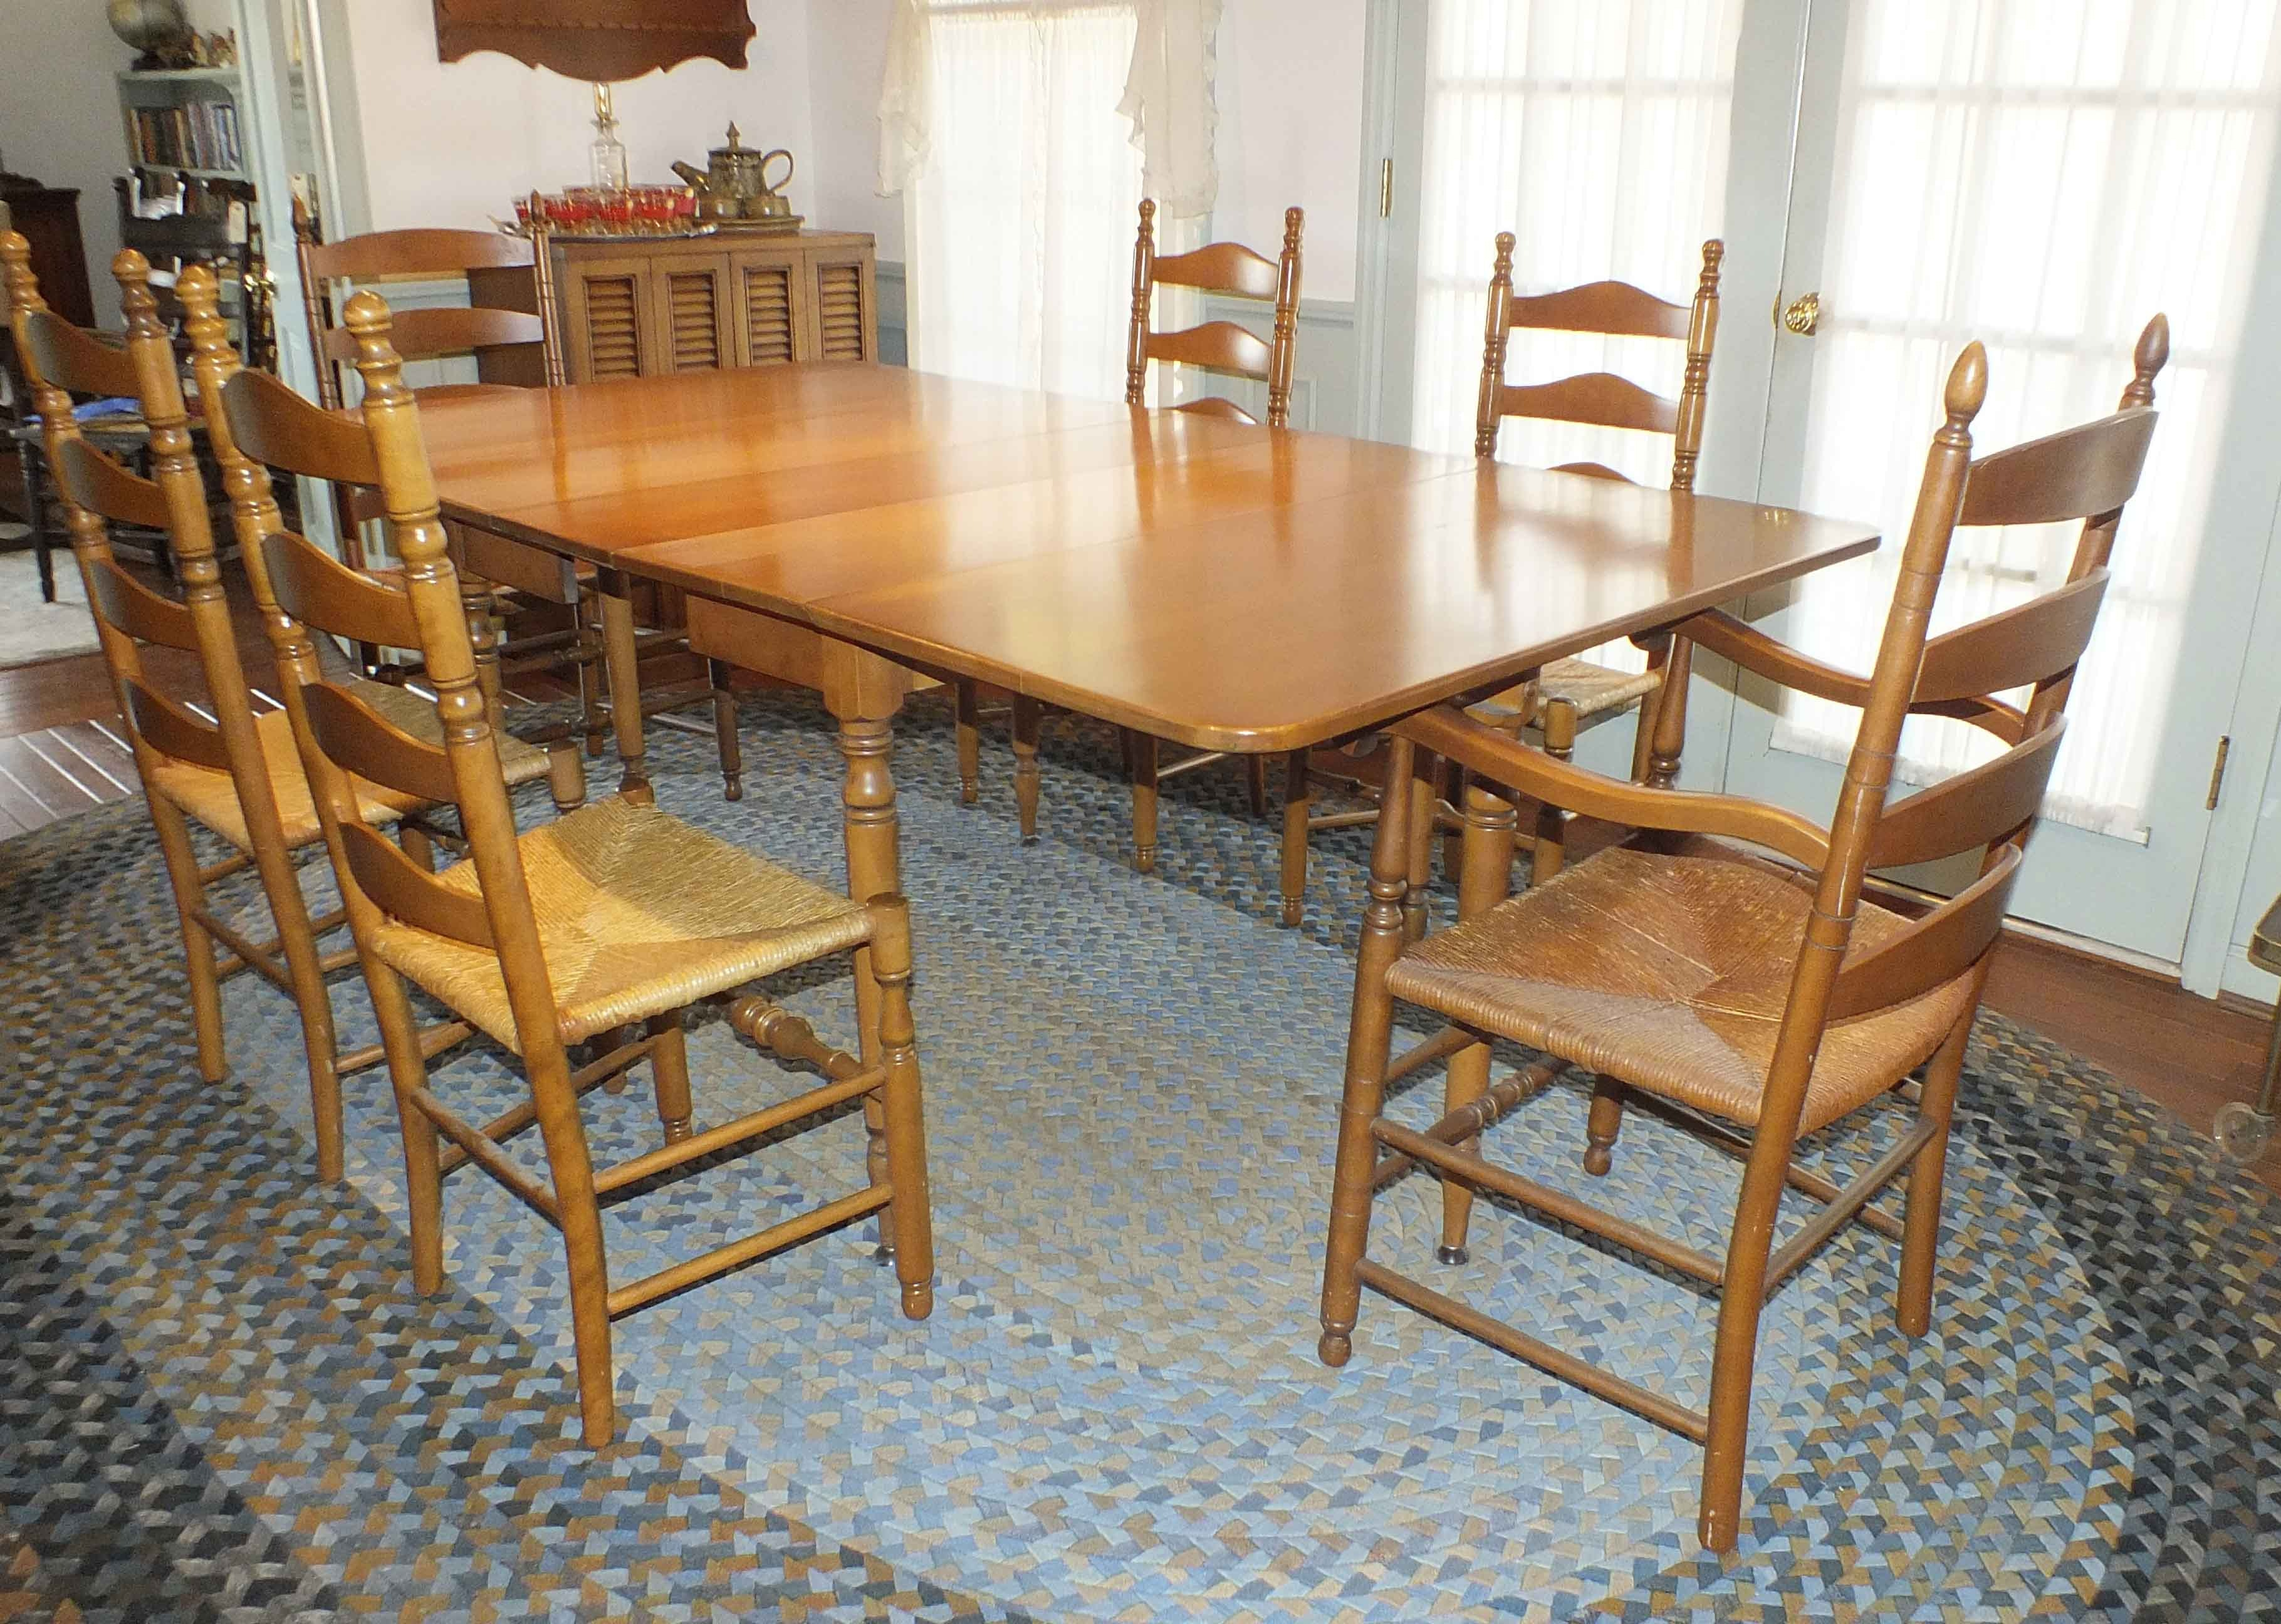 Maple Kitchen Table With Chair And Bench Ebth: Maple Gate Leg Dining Table And Chairs : EBTH